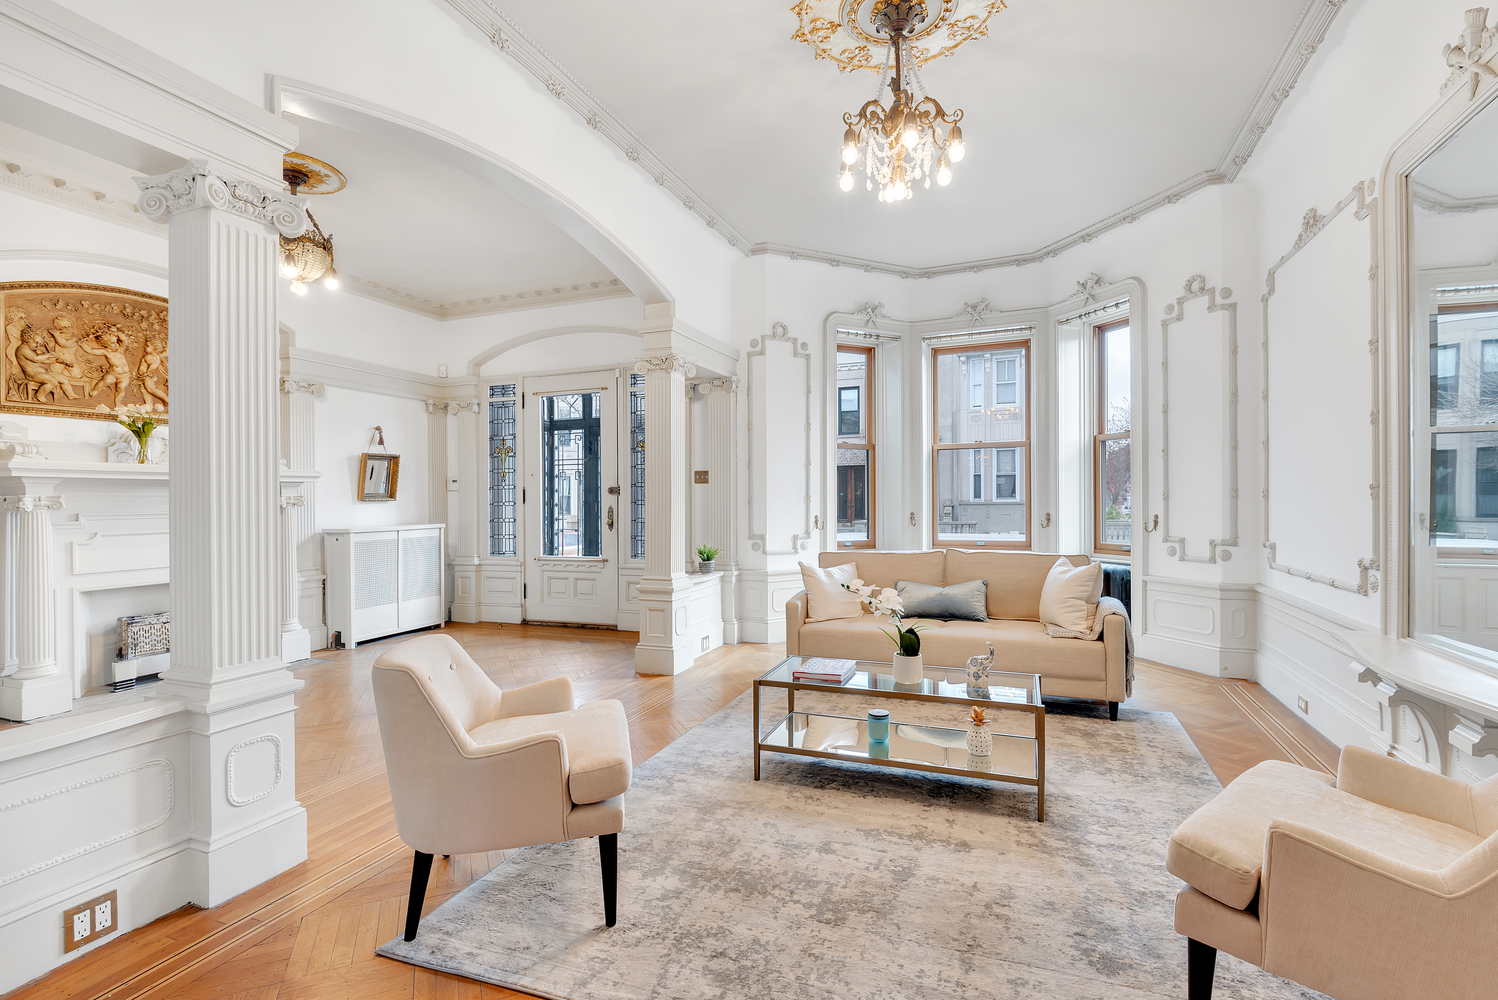 A living area with Ionic columns, hardwood floors, bay windows, and a chandelier.